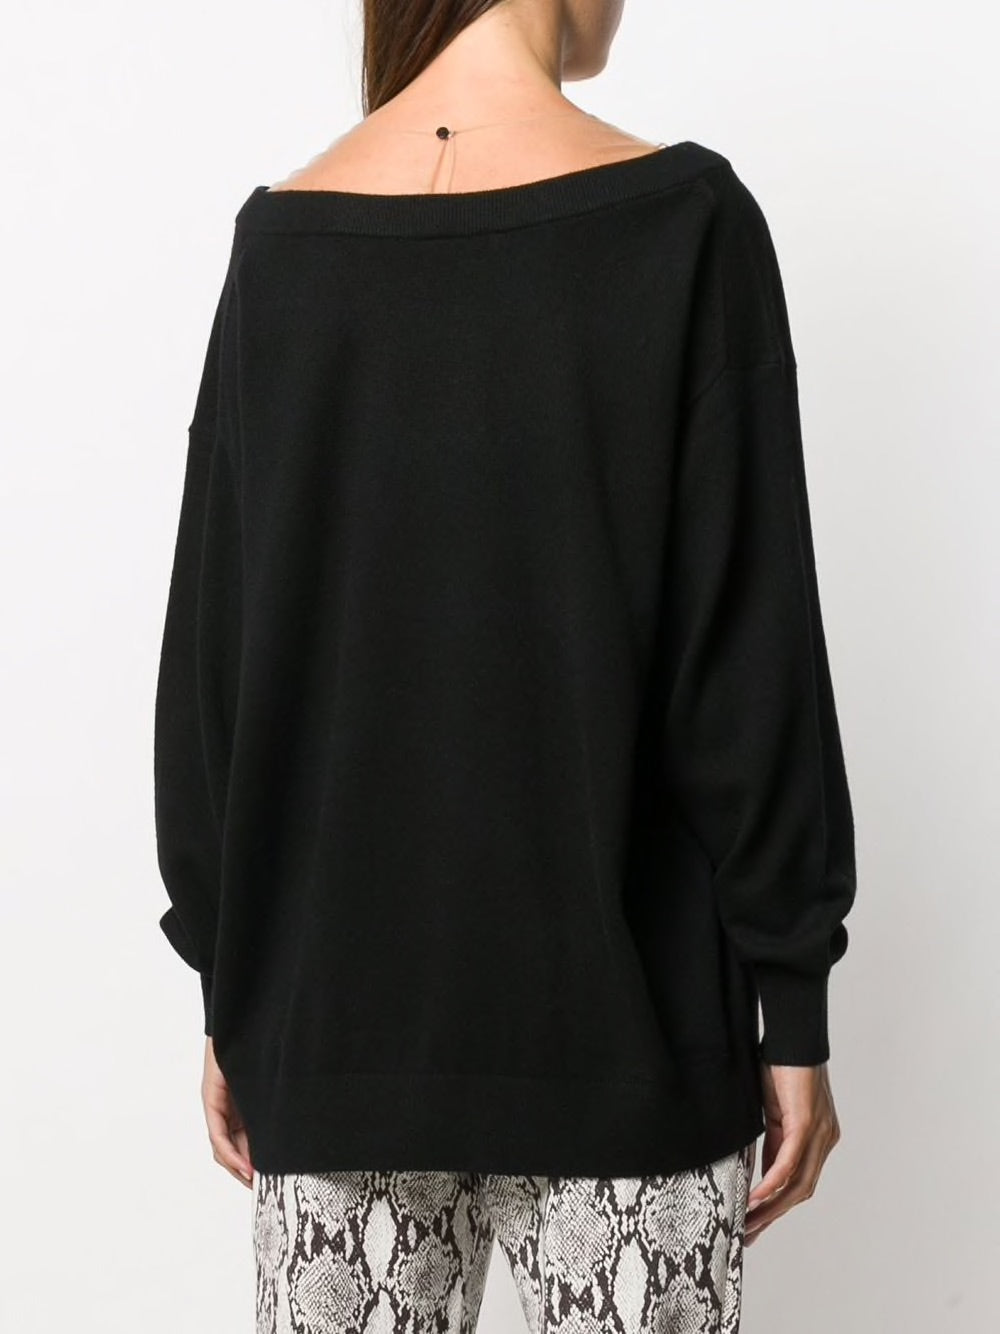 ALEXANDER WANG WOMEN OVERSIZED L/S PULLOVER WITH SHEER YOKE